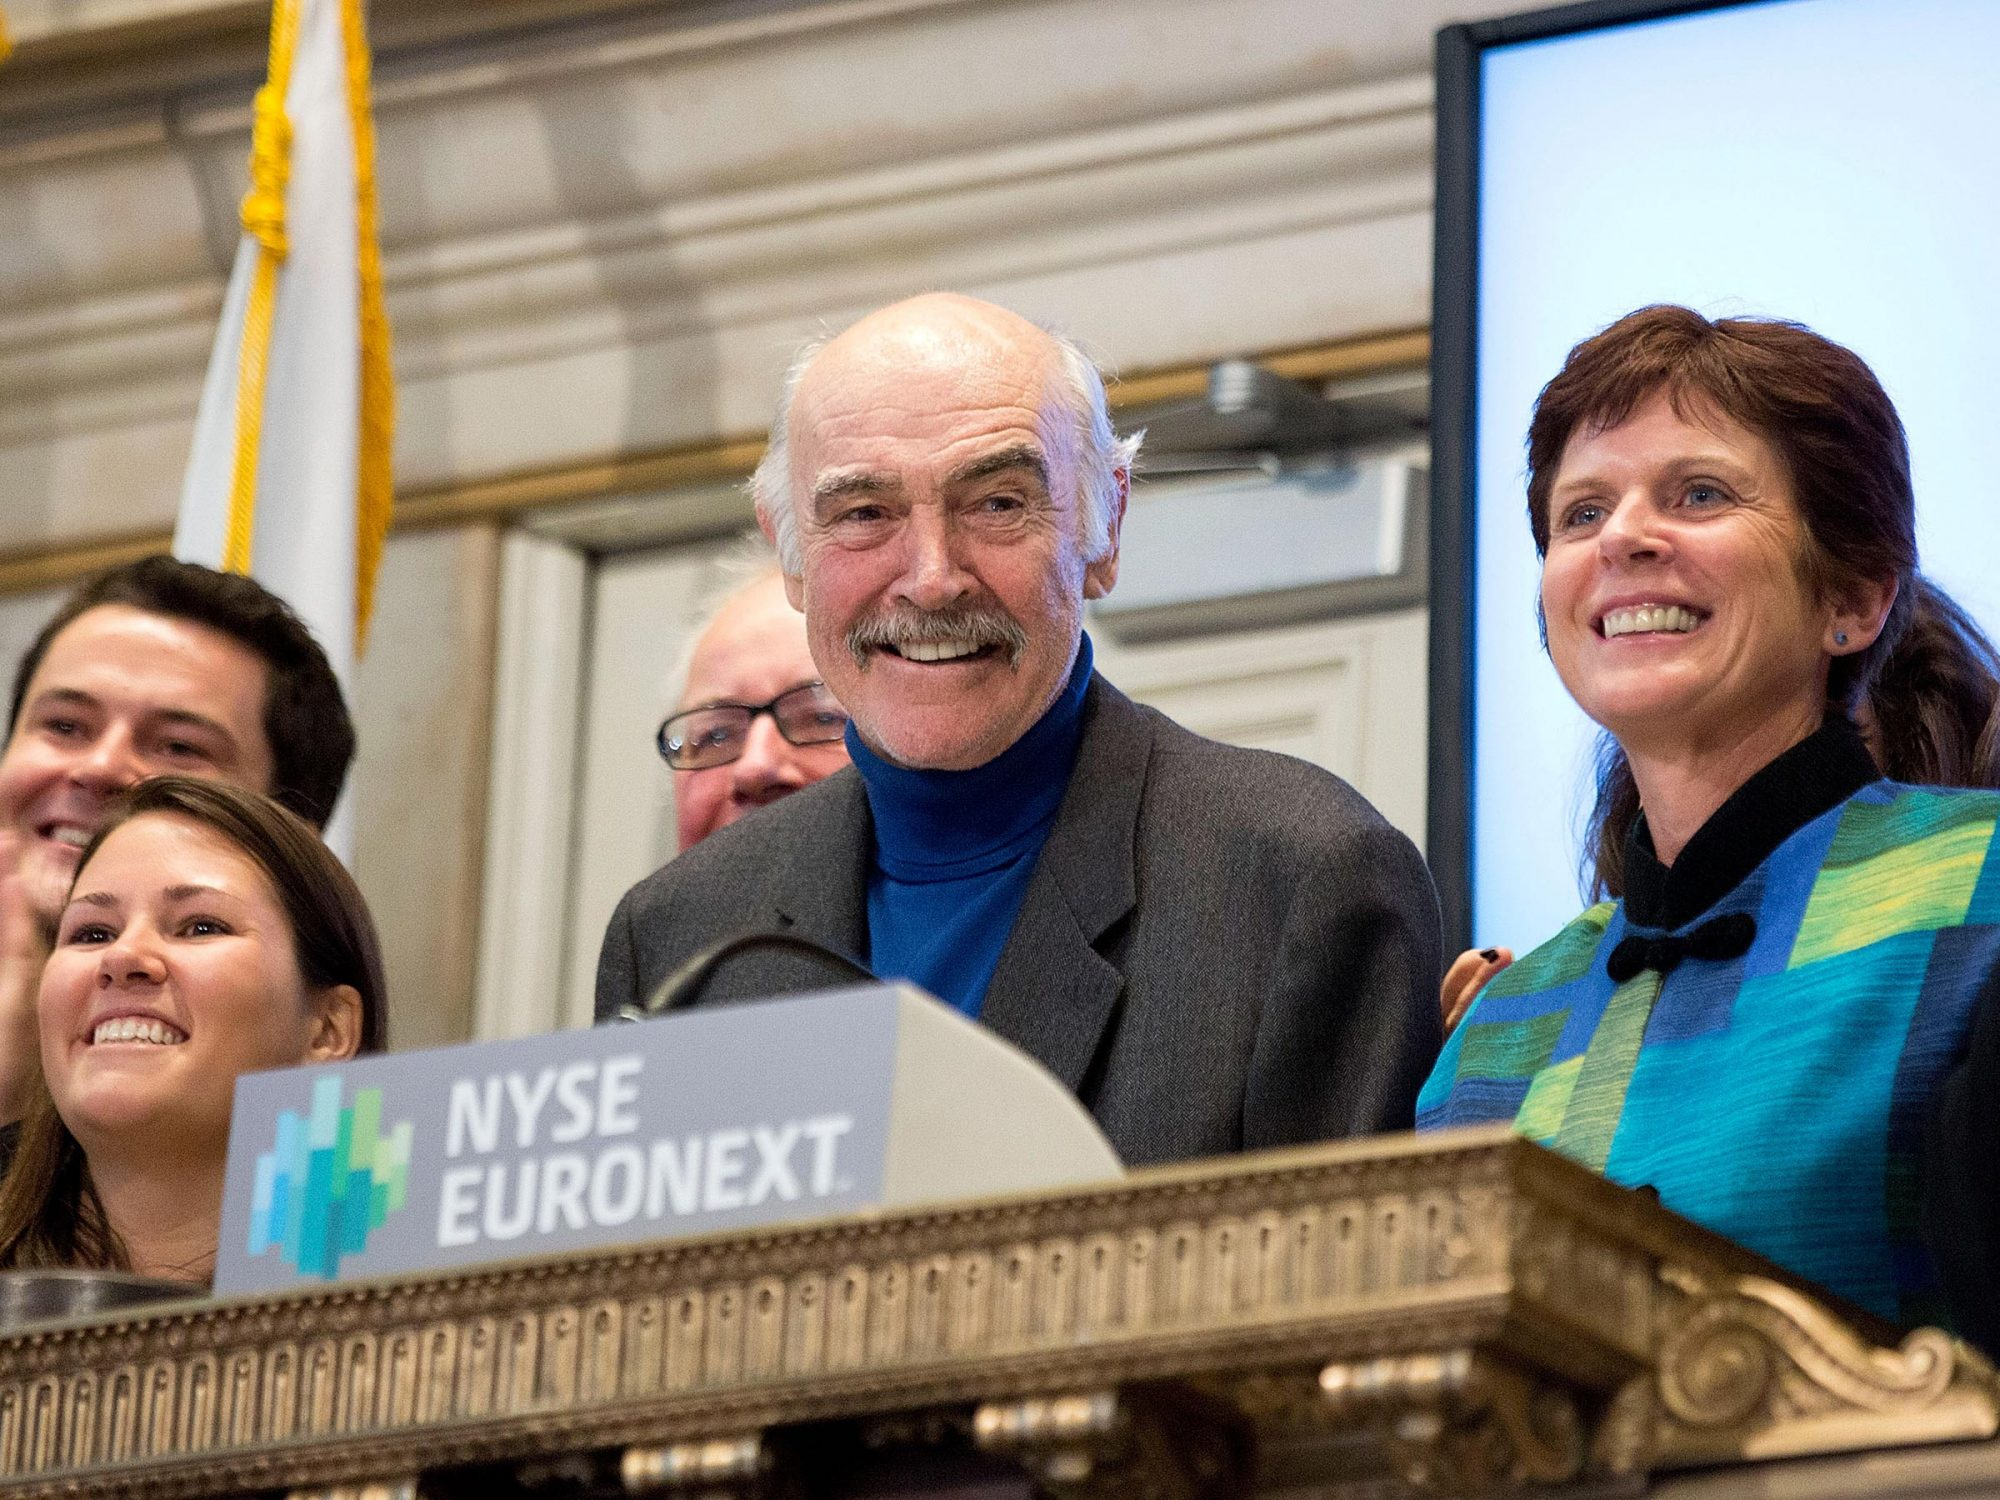 Sir Sean Connery Visits The New York Stock Exchange